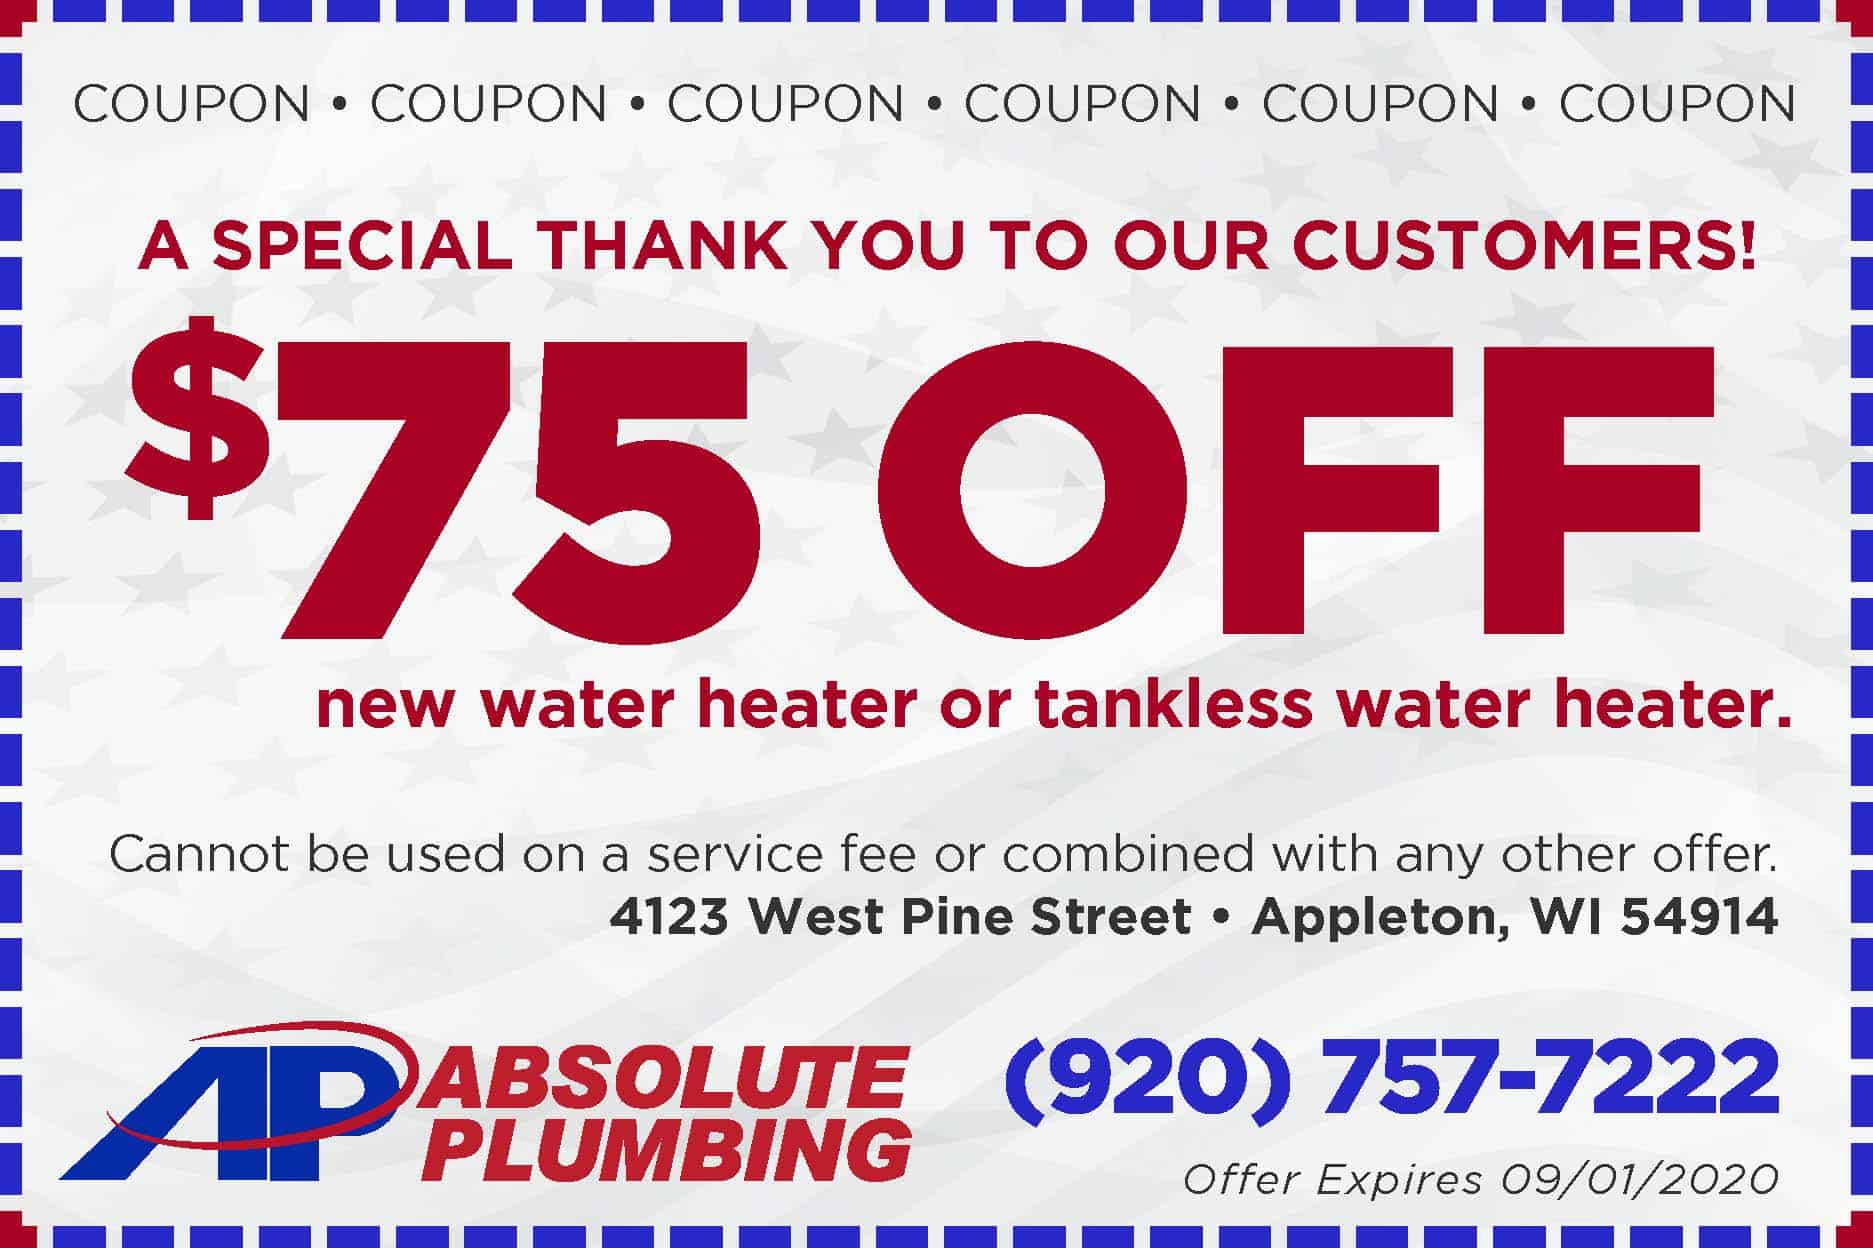 Absolute 75 Off new water heater-Coupon